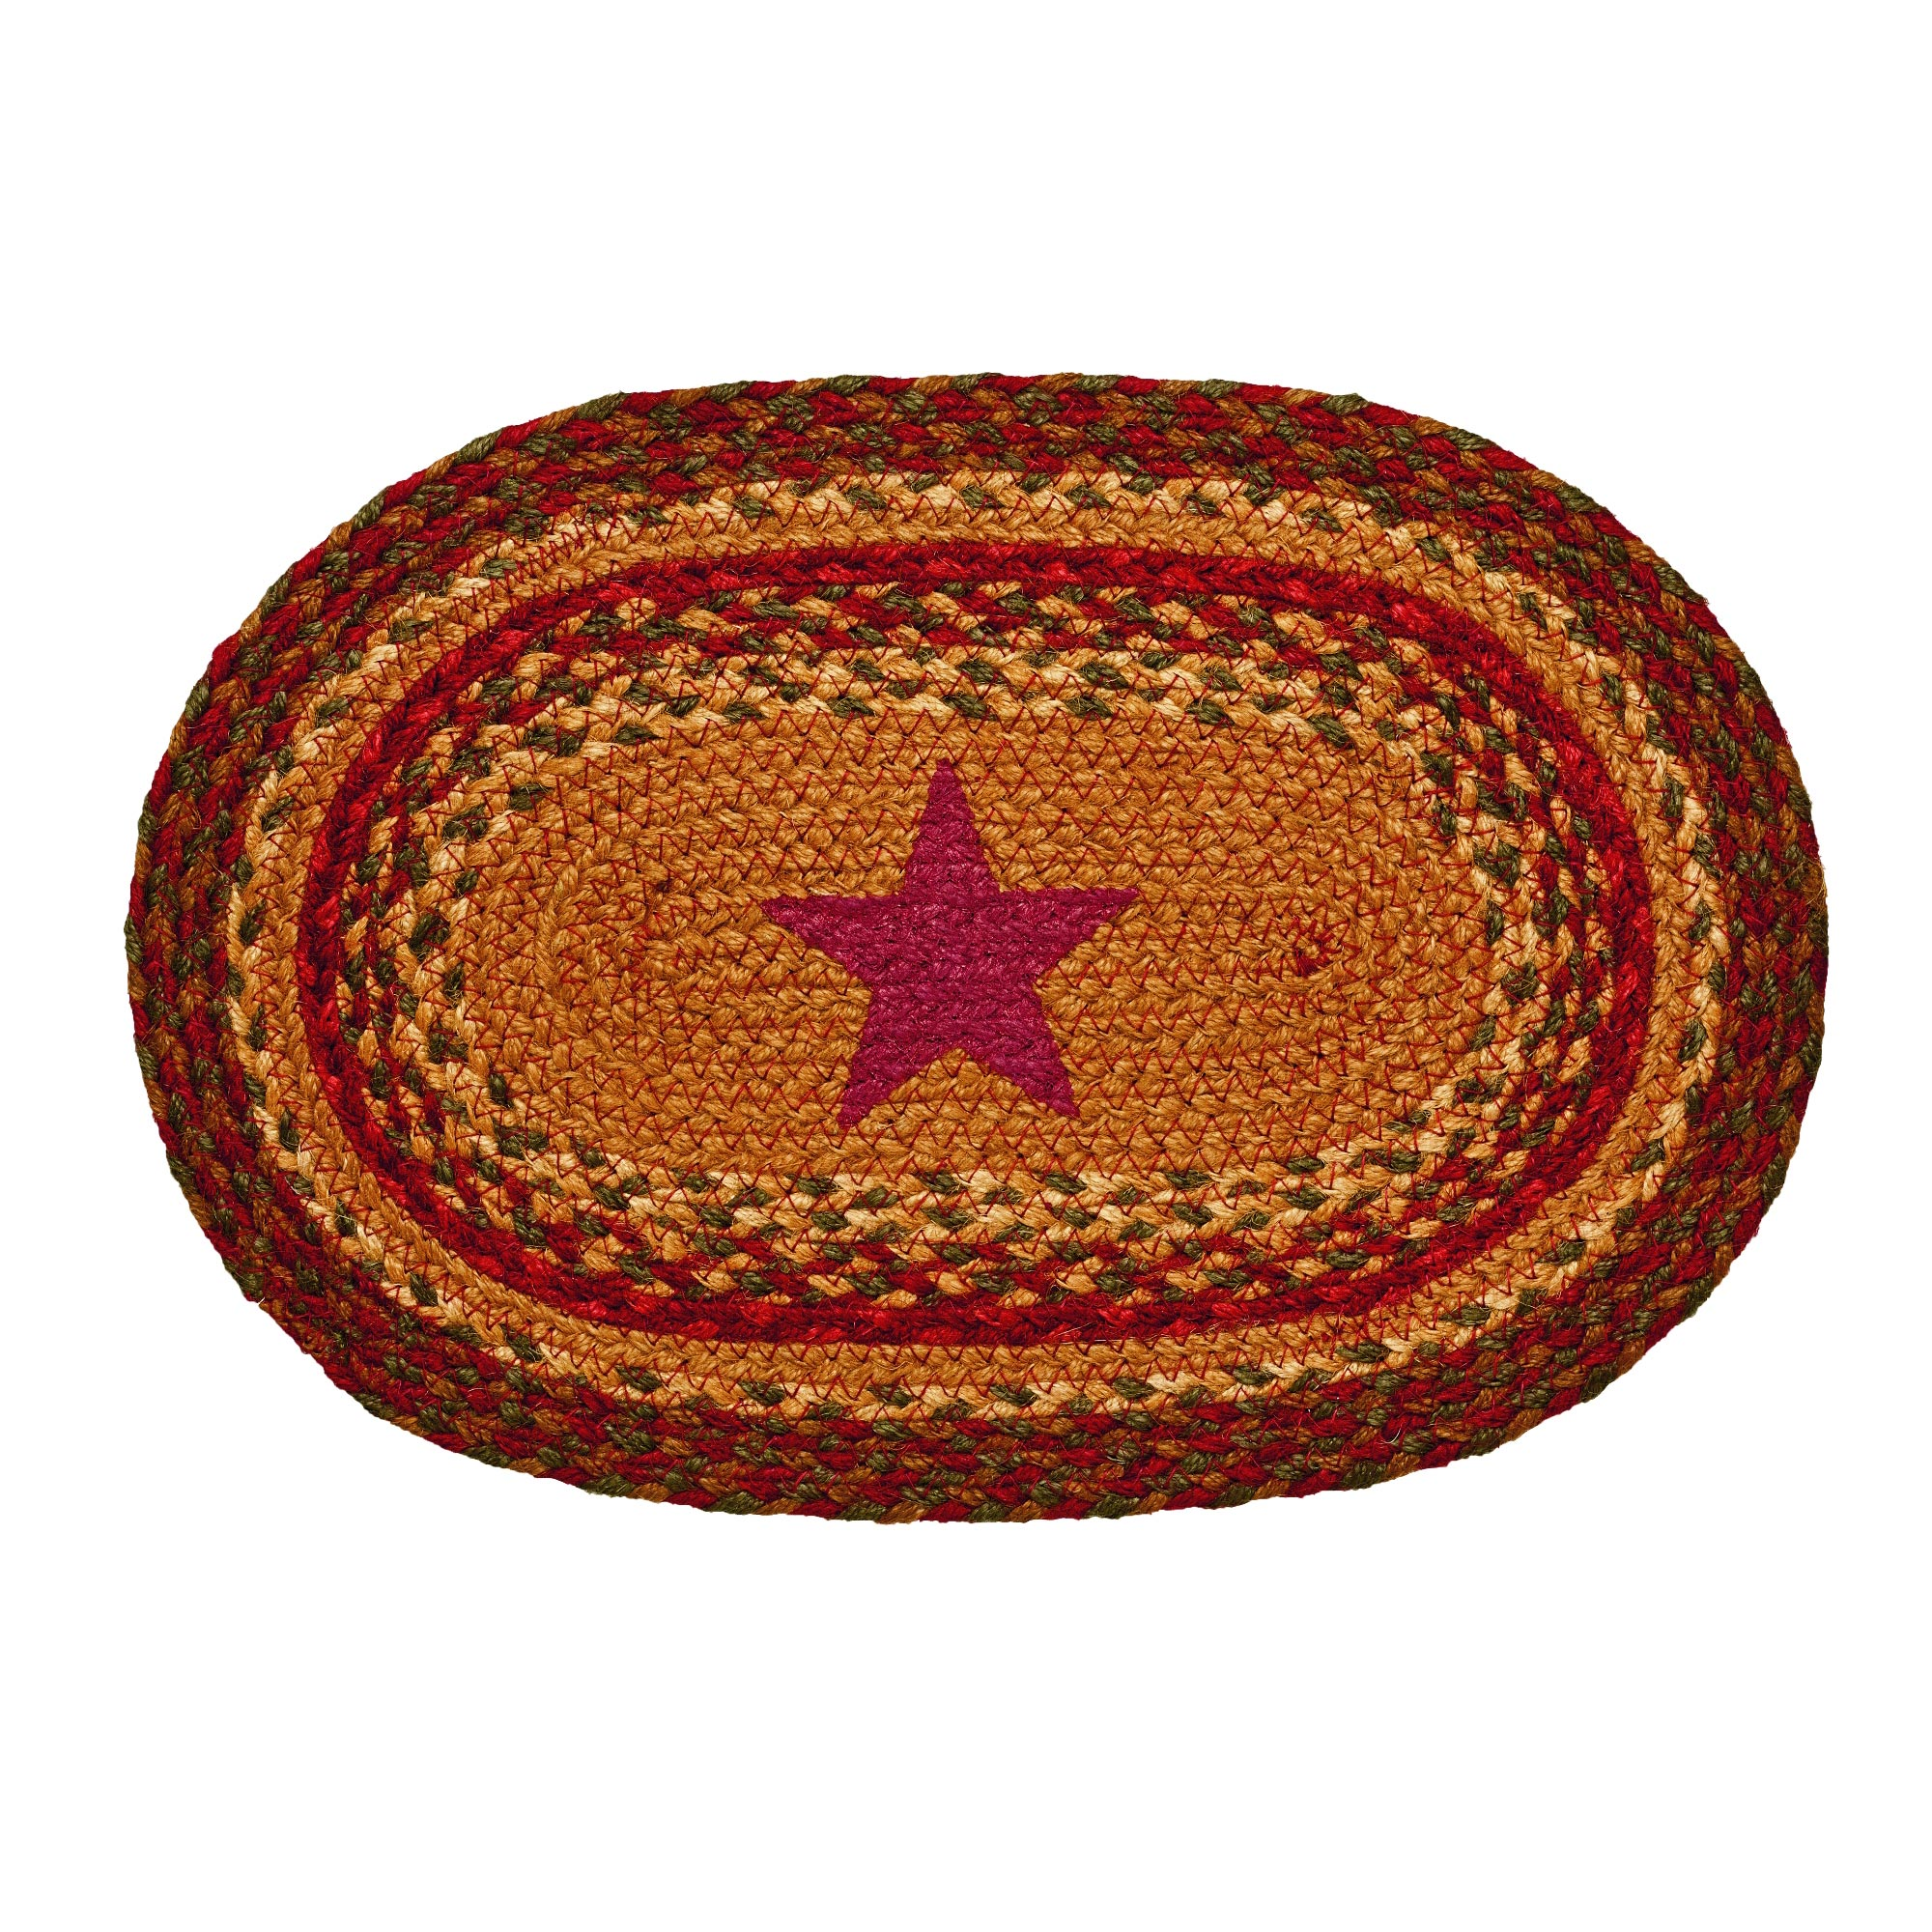 Cinnamon Star Braided Rug Swatch